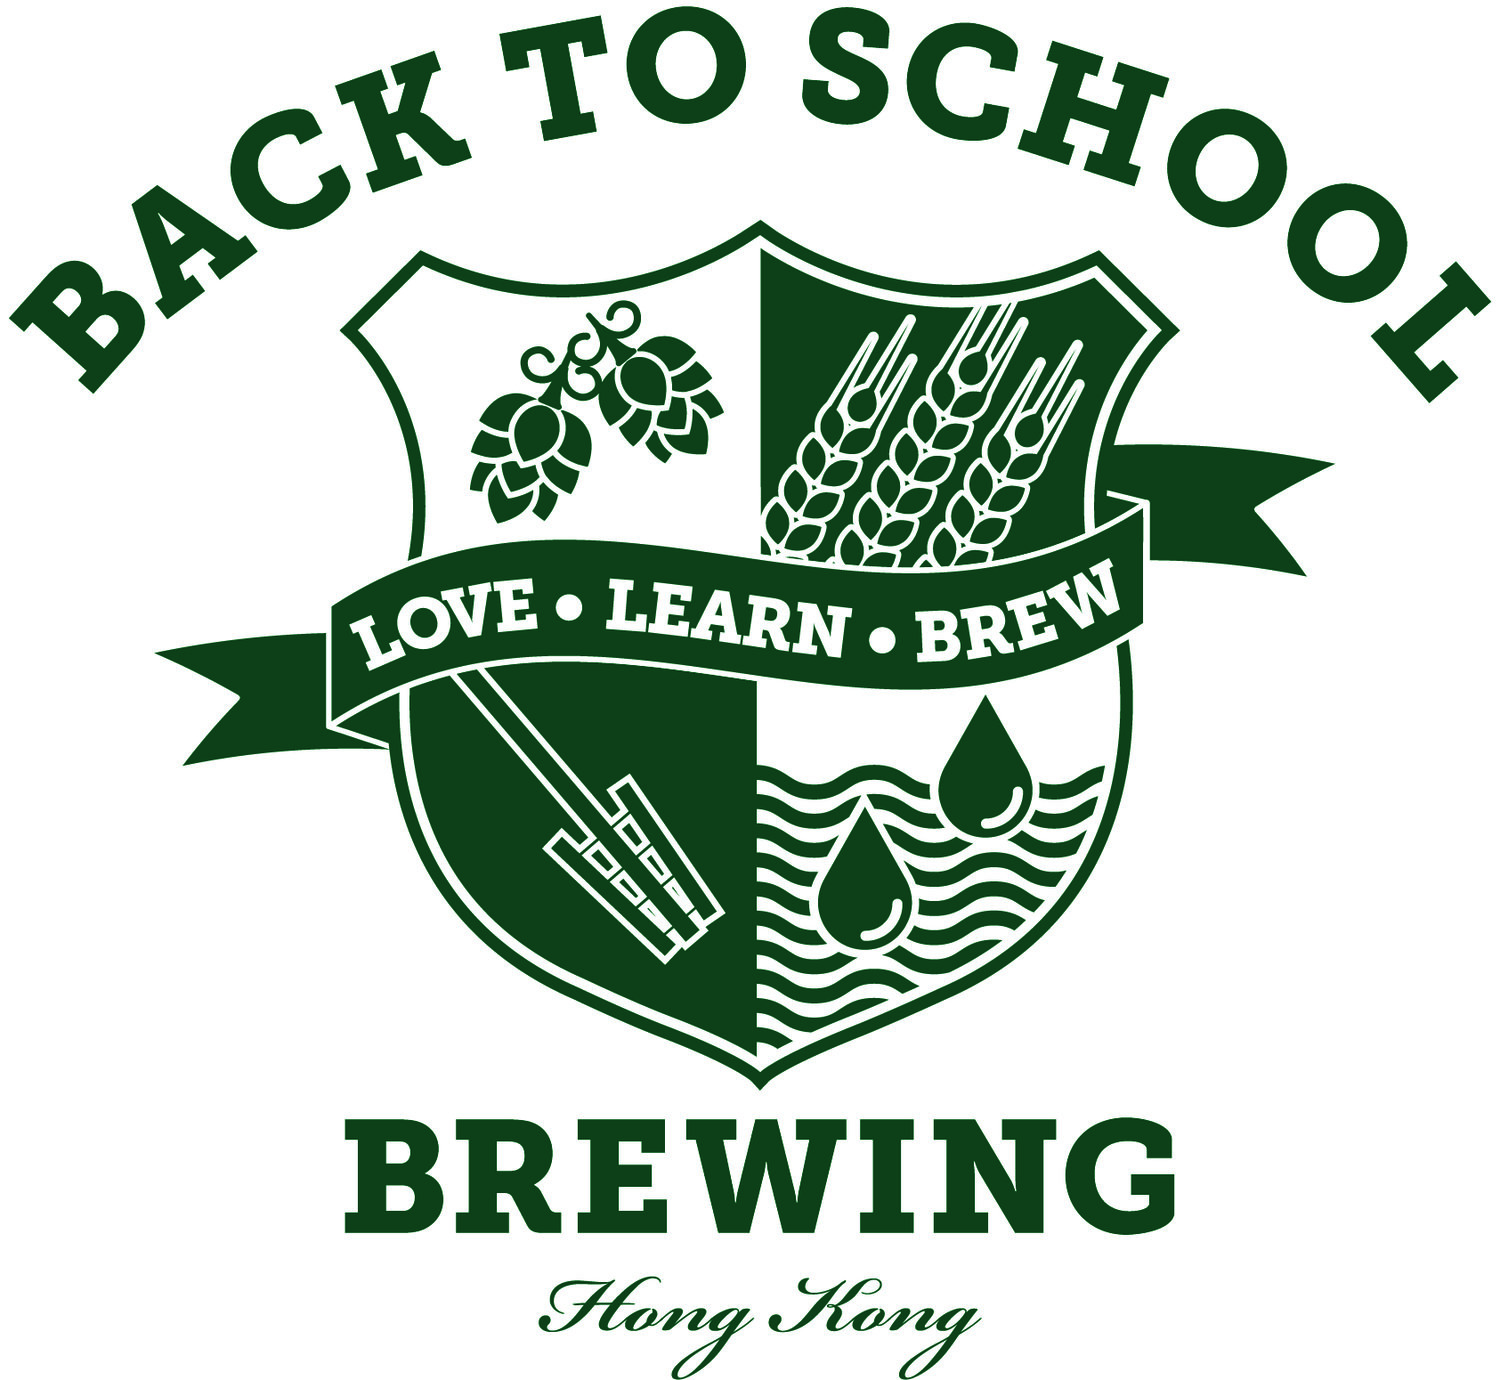 Back to School Brewing